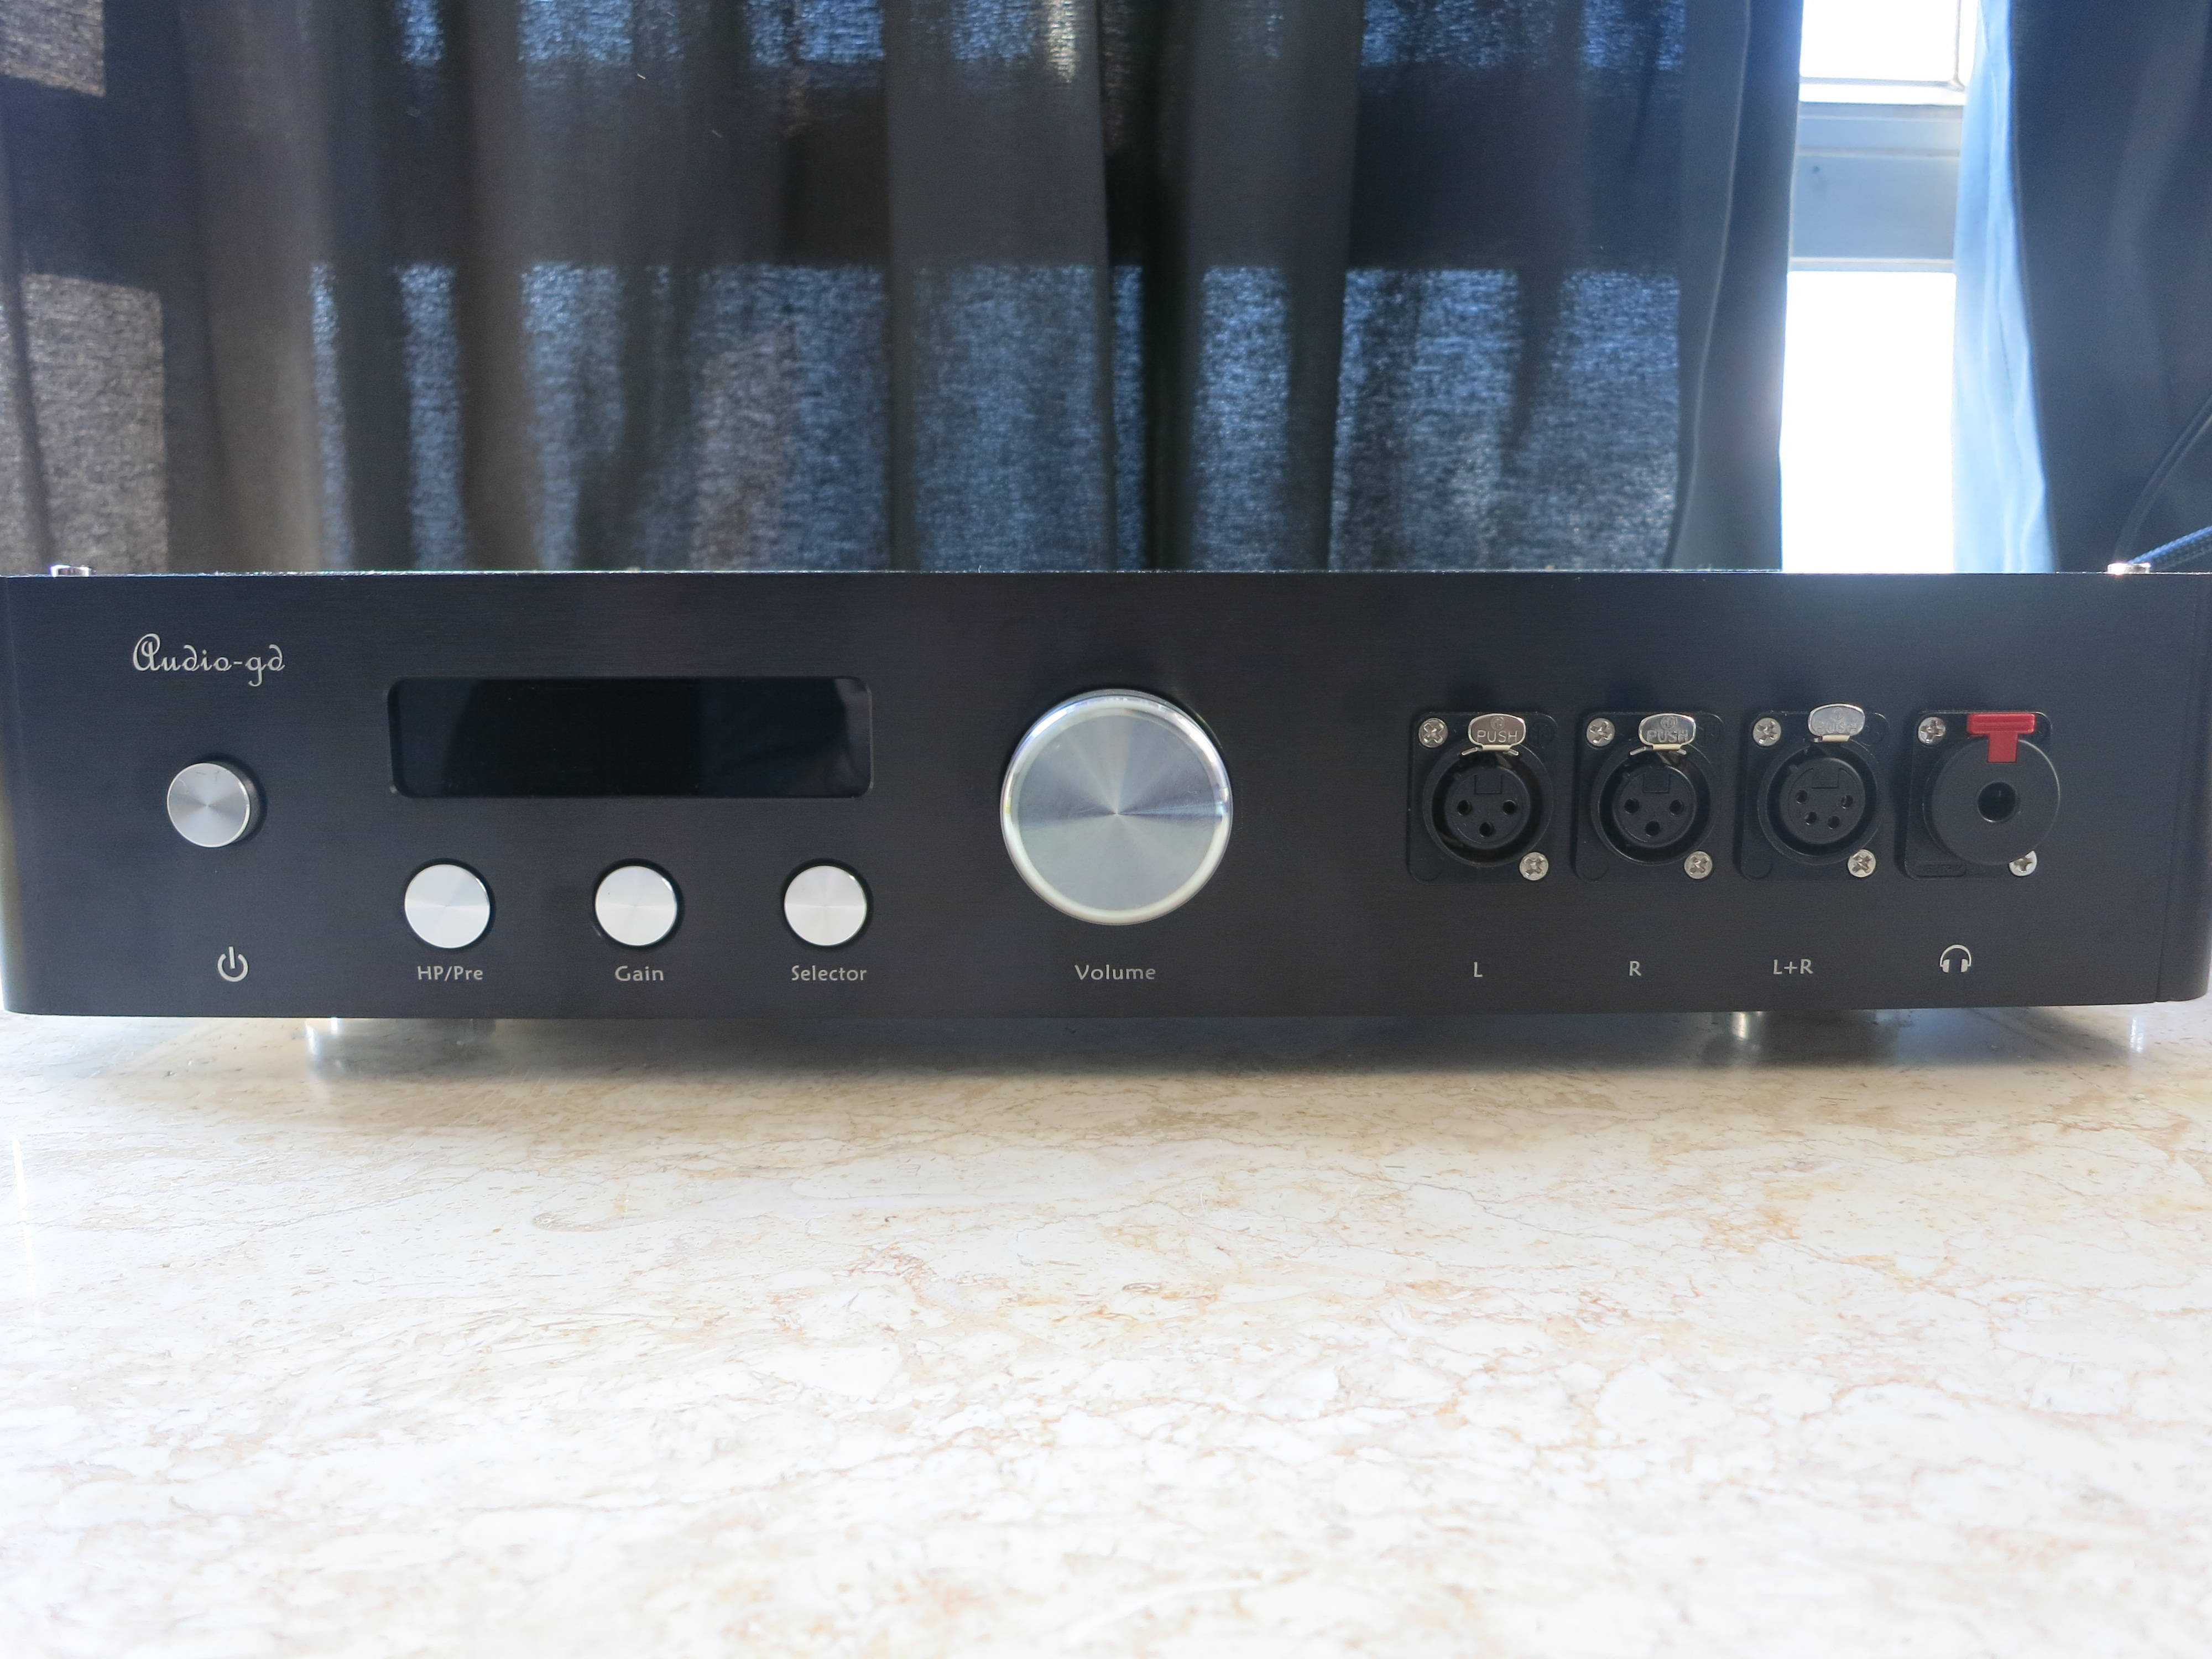 Master 9 front